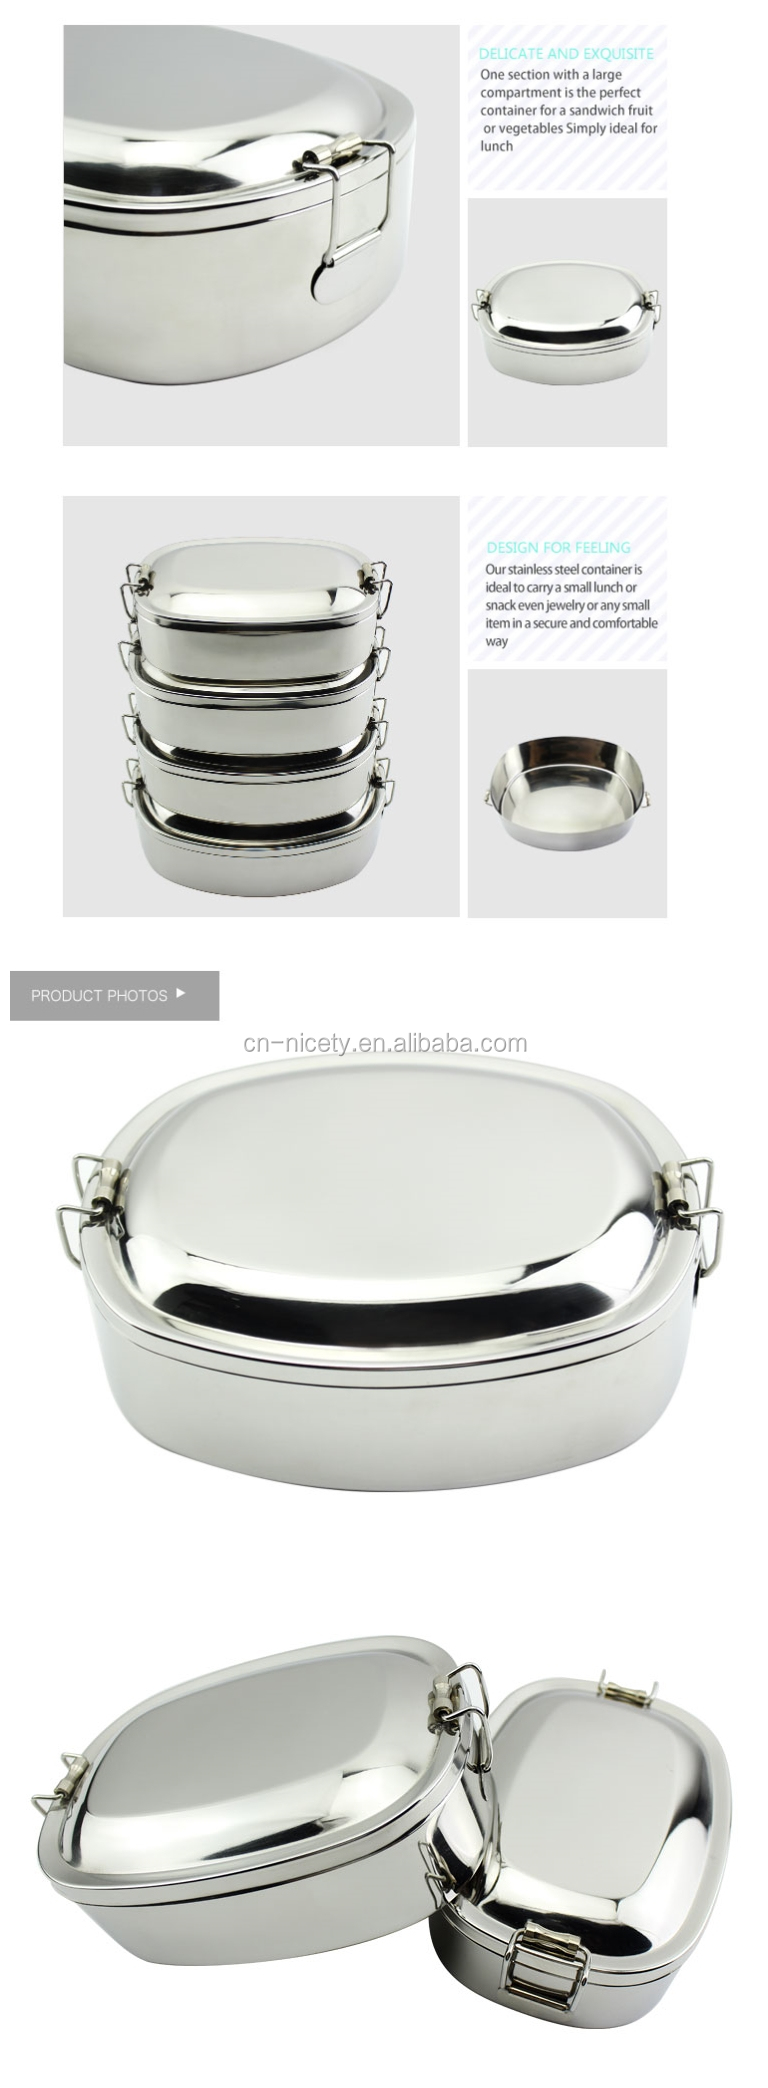 18/8 stainless steel lunchbox american style premium lunch box  sc 1 st  Alibaba & 18/8 Stainless Steel Lunchbox American Style Premium Lunch Box ... Aboutintivar.Com